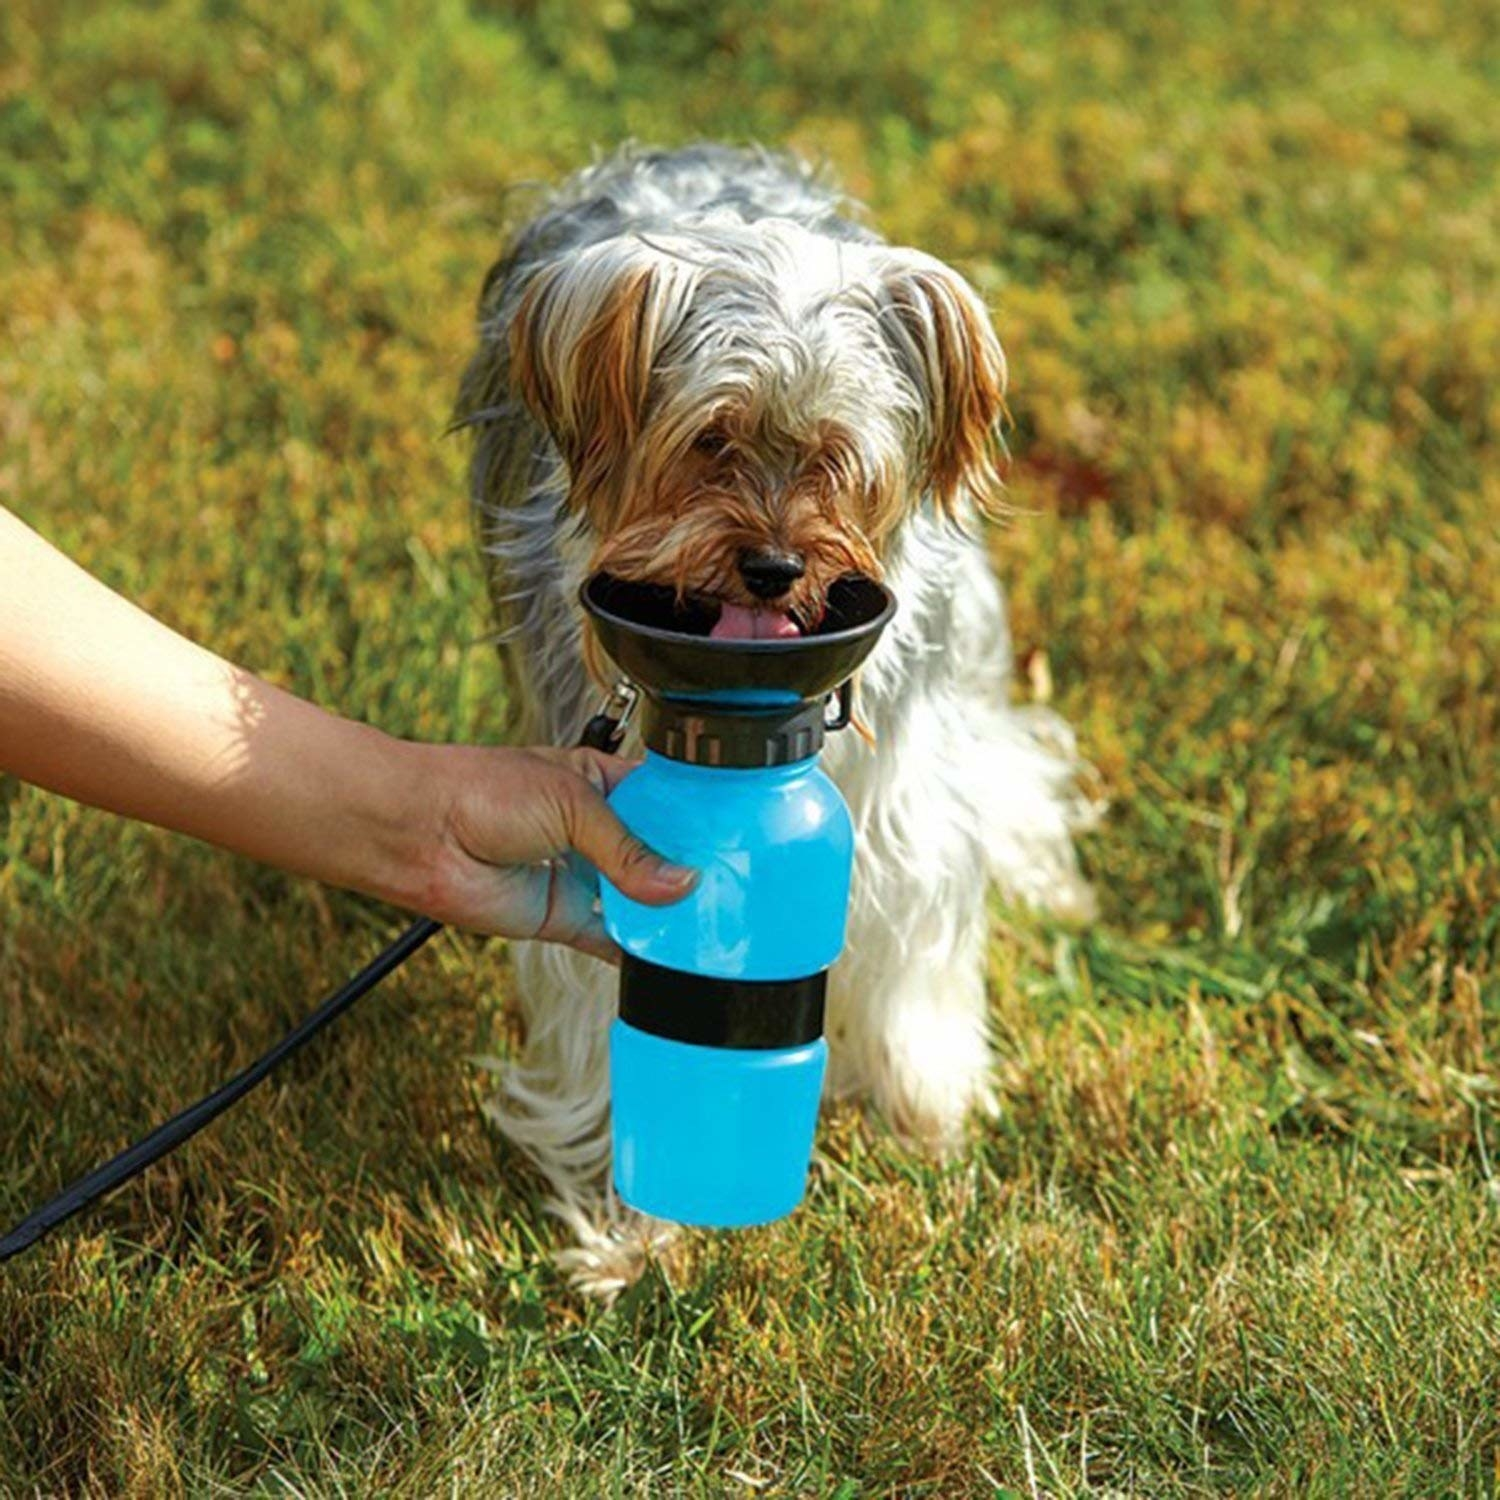 A dog drinking from a dog water bottle outside.